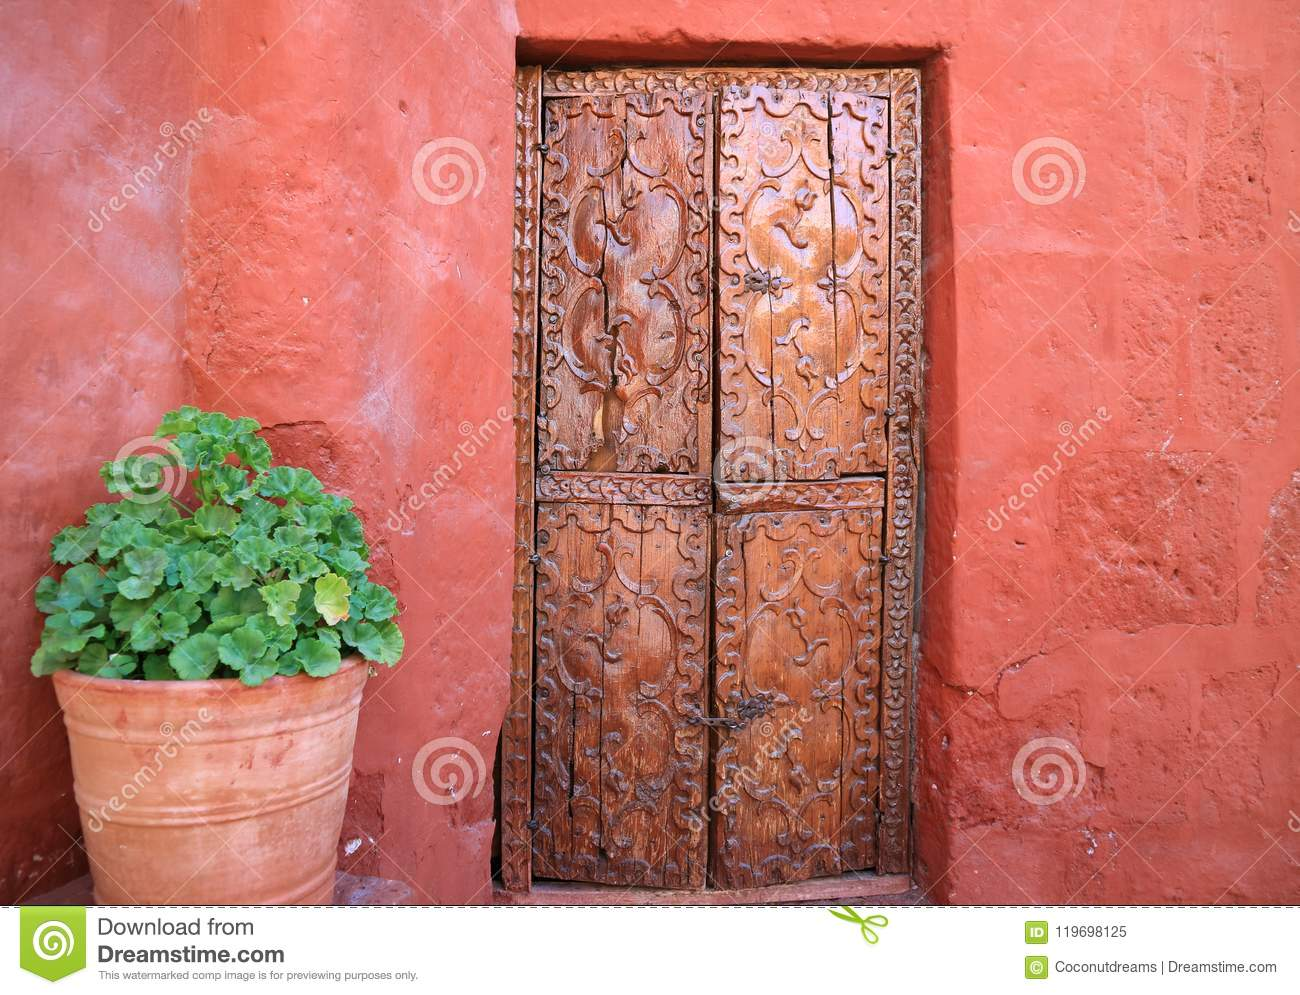 Old carved wood door on the orange red color rough wall with a big terracotta planters in Santa Catalina Monastery